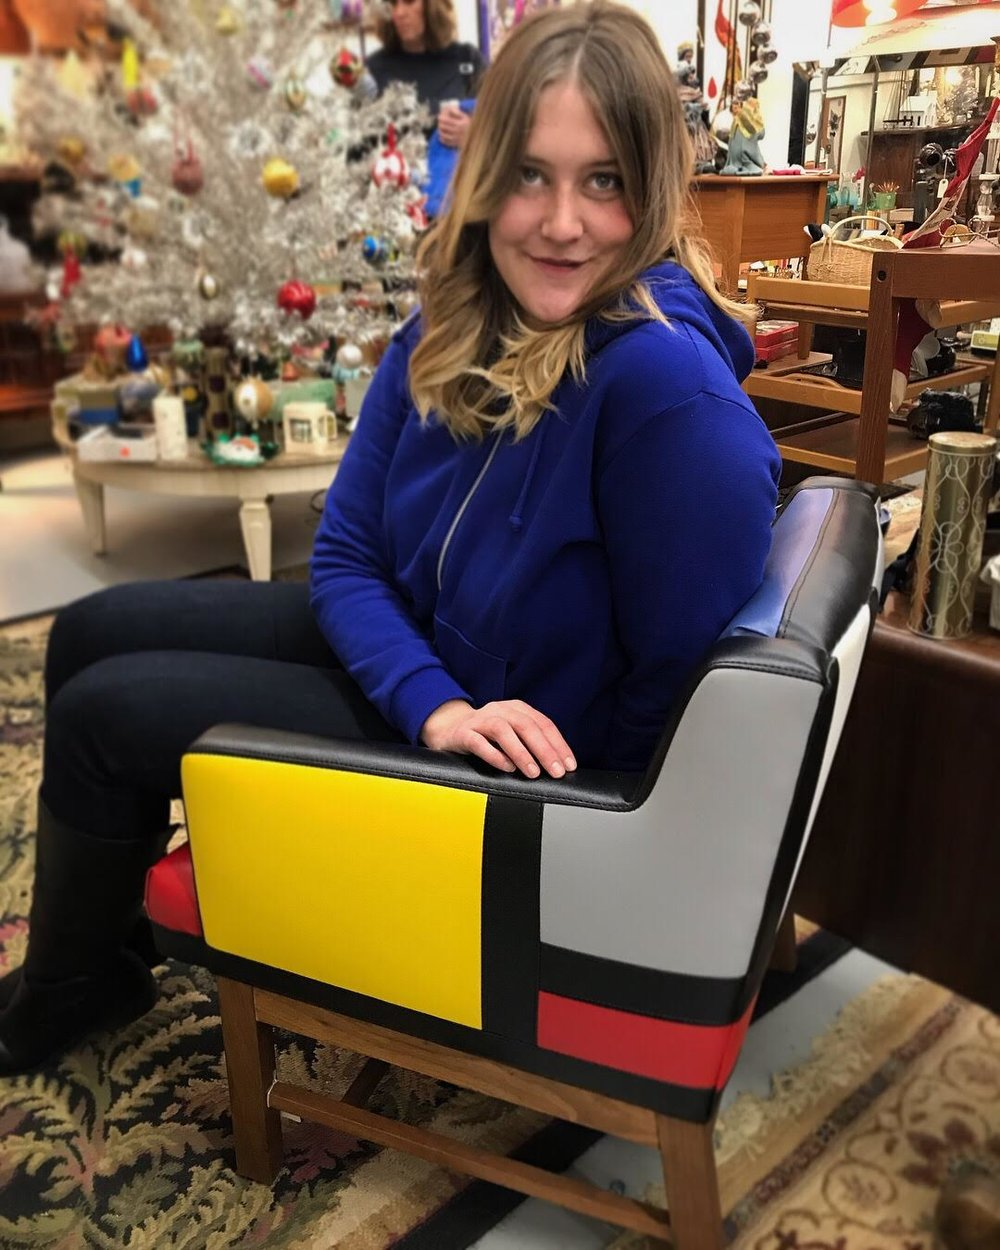 Super RAD Mondrian inspired chair I found at a thrift store! No, I couldn't afford it.